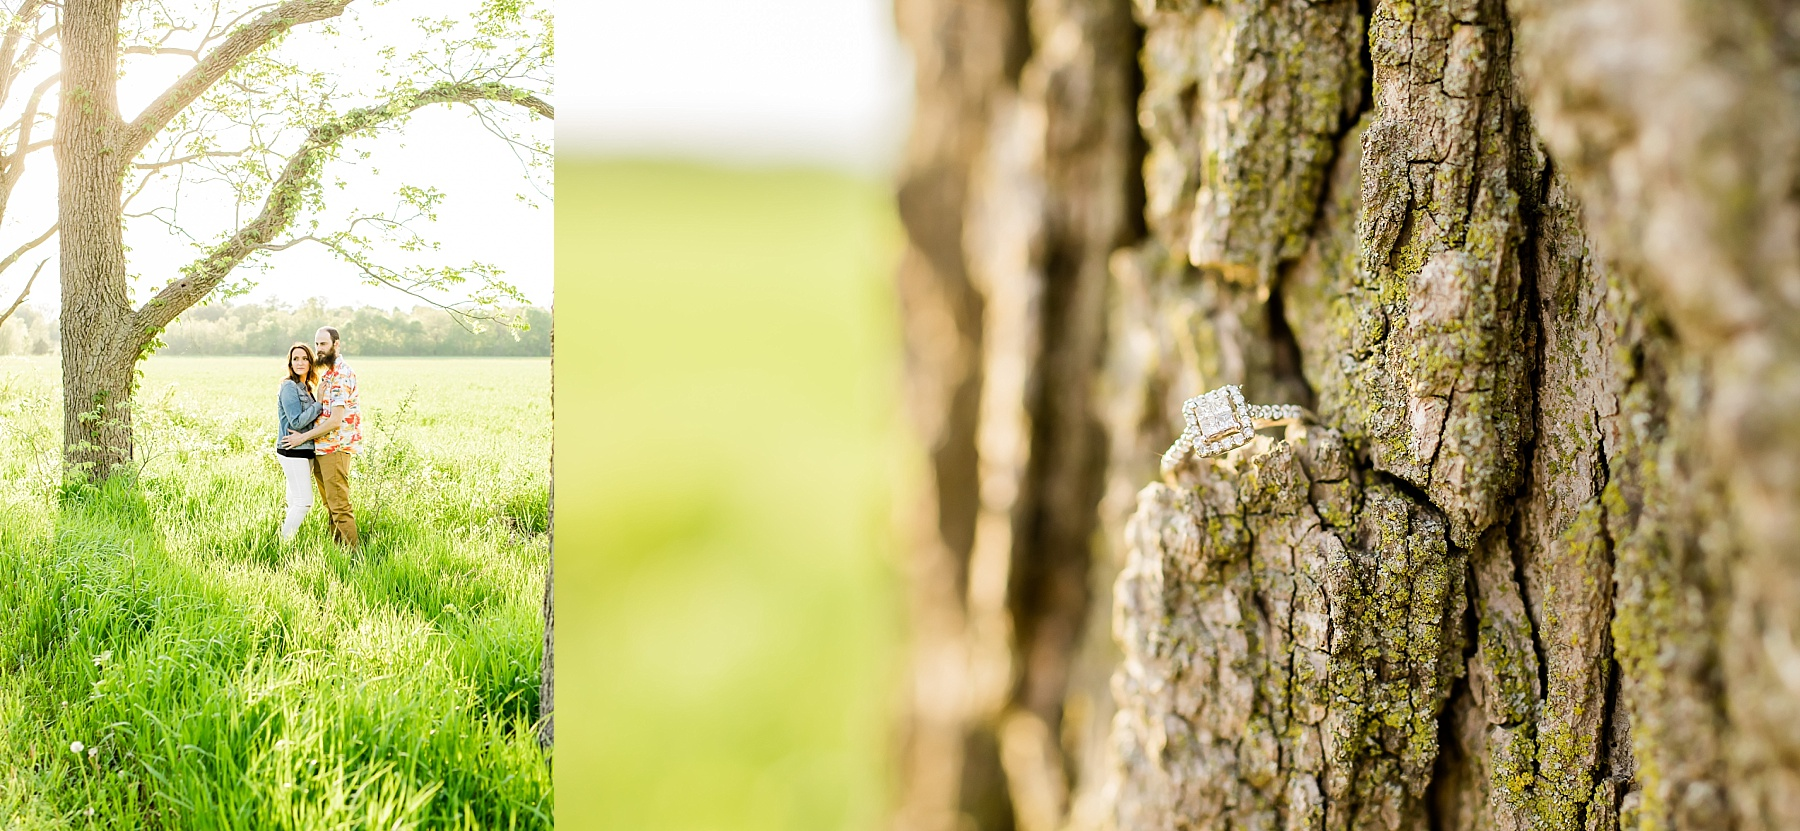 monticello indiana wedding engagement photography simple adventure weird_0046.jpg